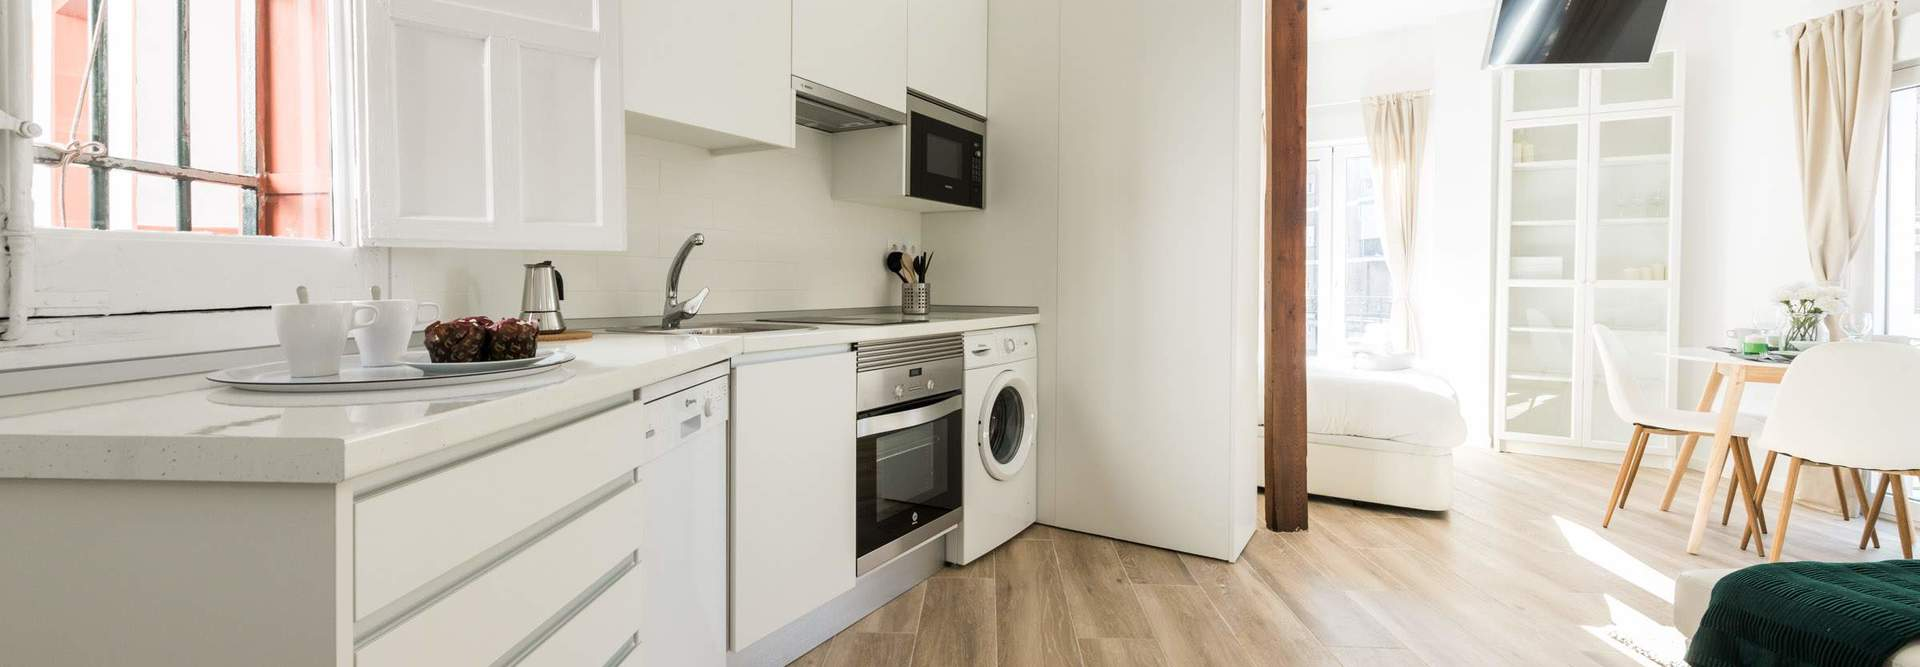 Home alquiler apartamento madrid centro mad4rent  7